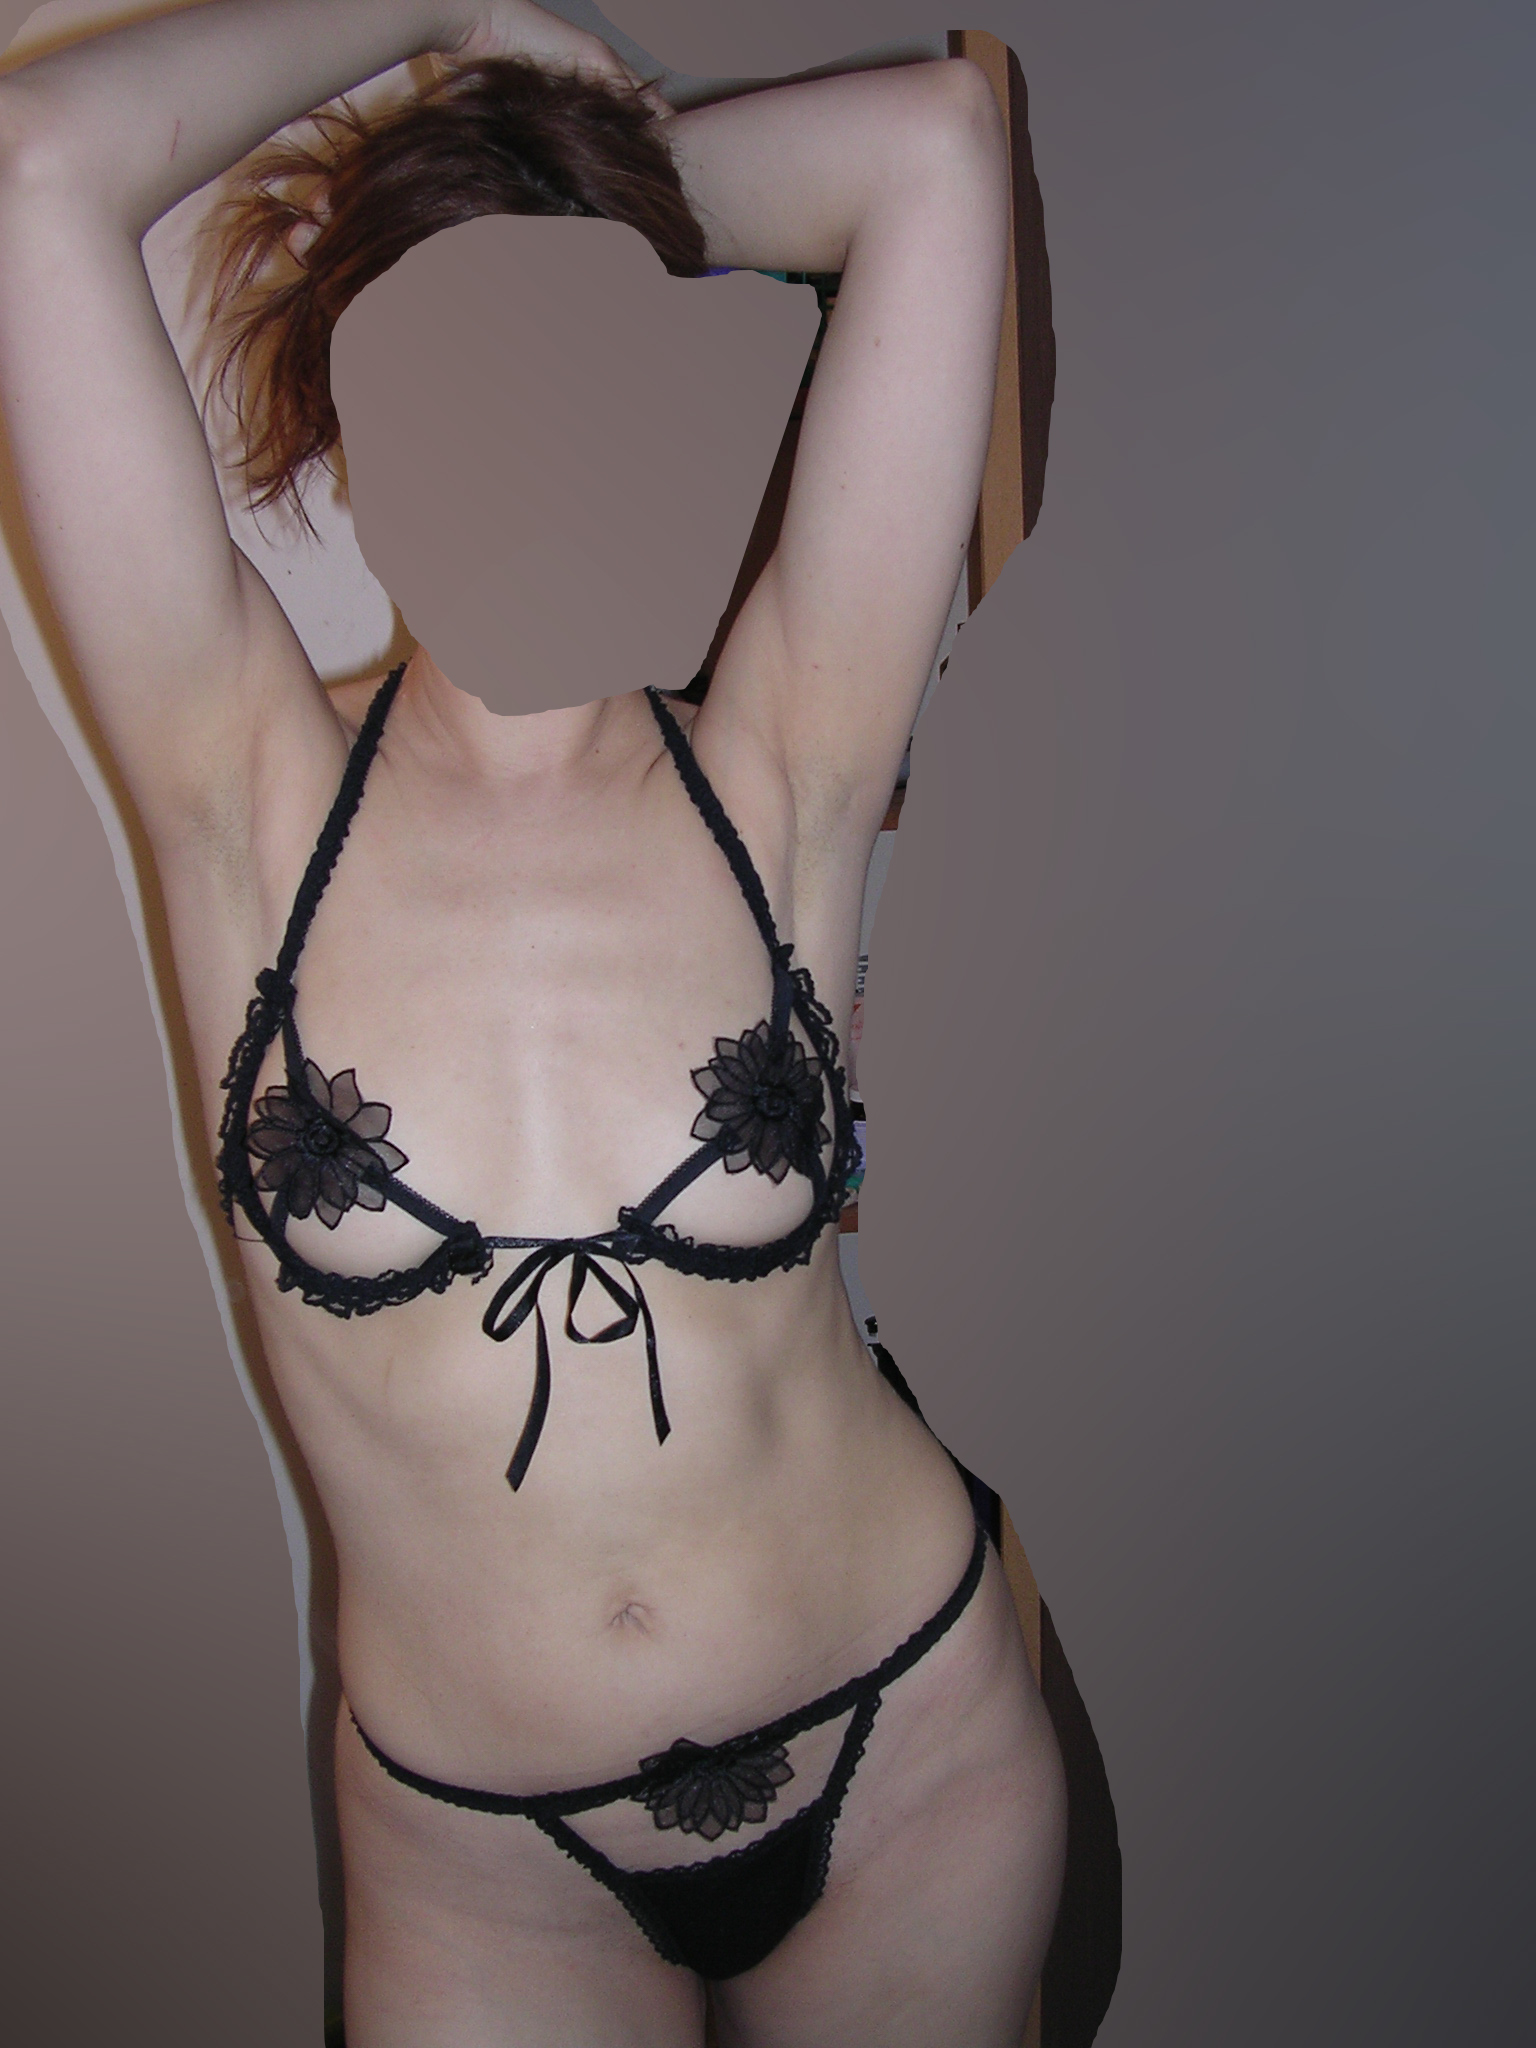 showing porn images for japanese sister in law porn Where can I #share pictures of my #wife? PM me. #hotwife #bikini #amateur #lingerie #milf #tits #blurred #wifesharing #mature #redhead #shar